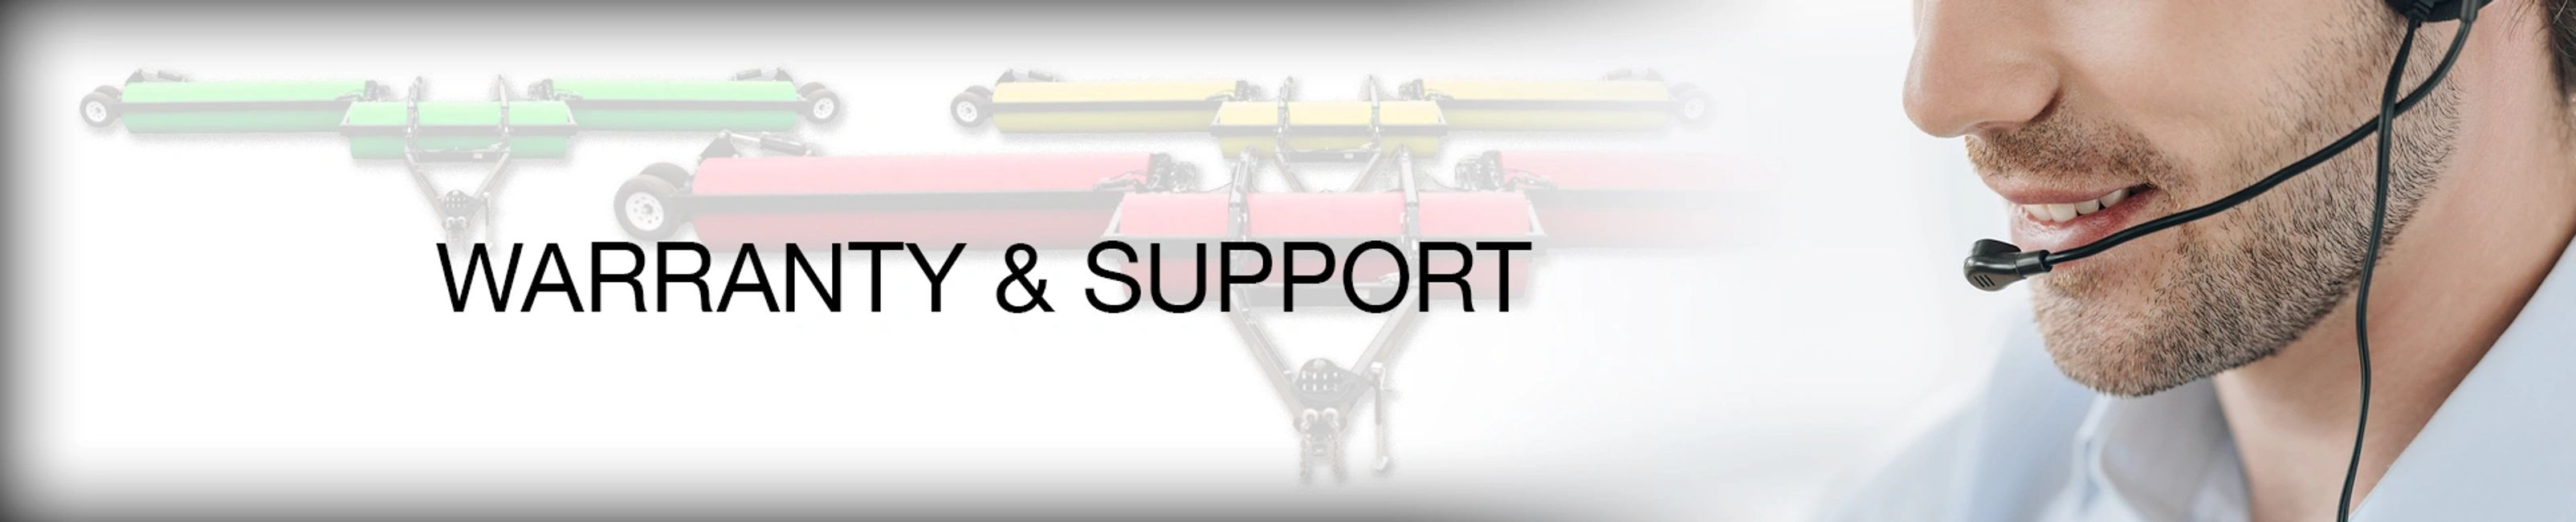 warranty, support, 1-year, 2-year, parts only support, on farm, extended warranty, landrollers.com